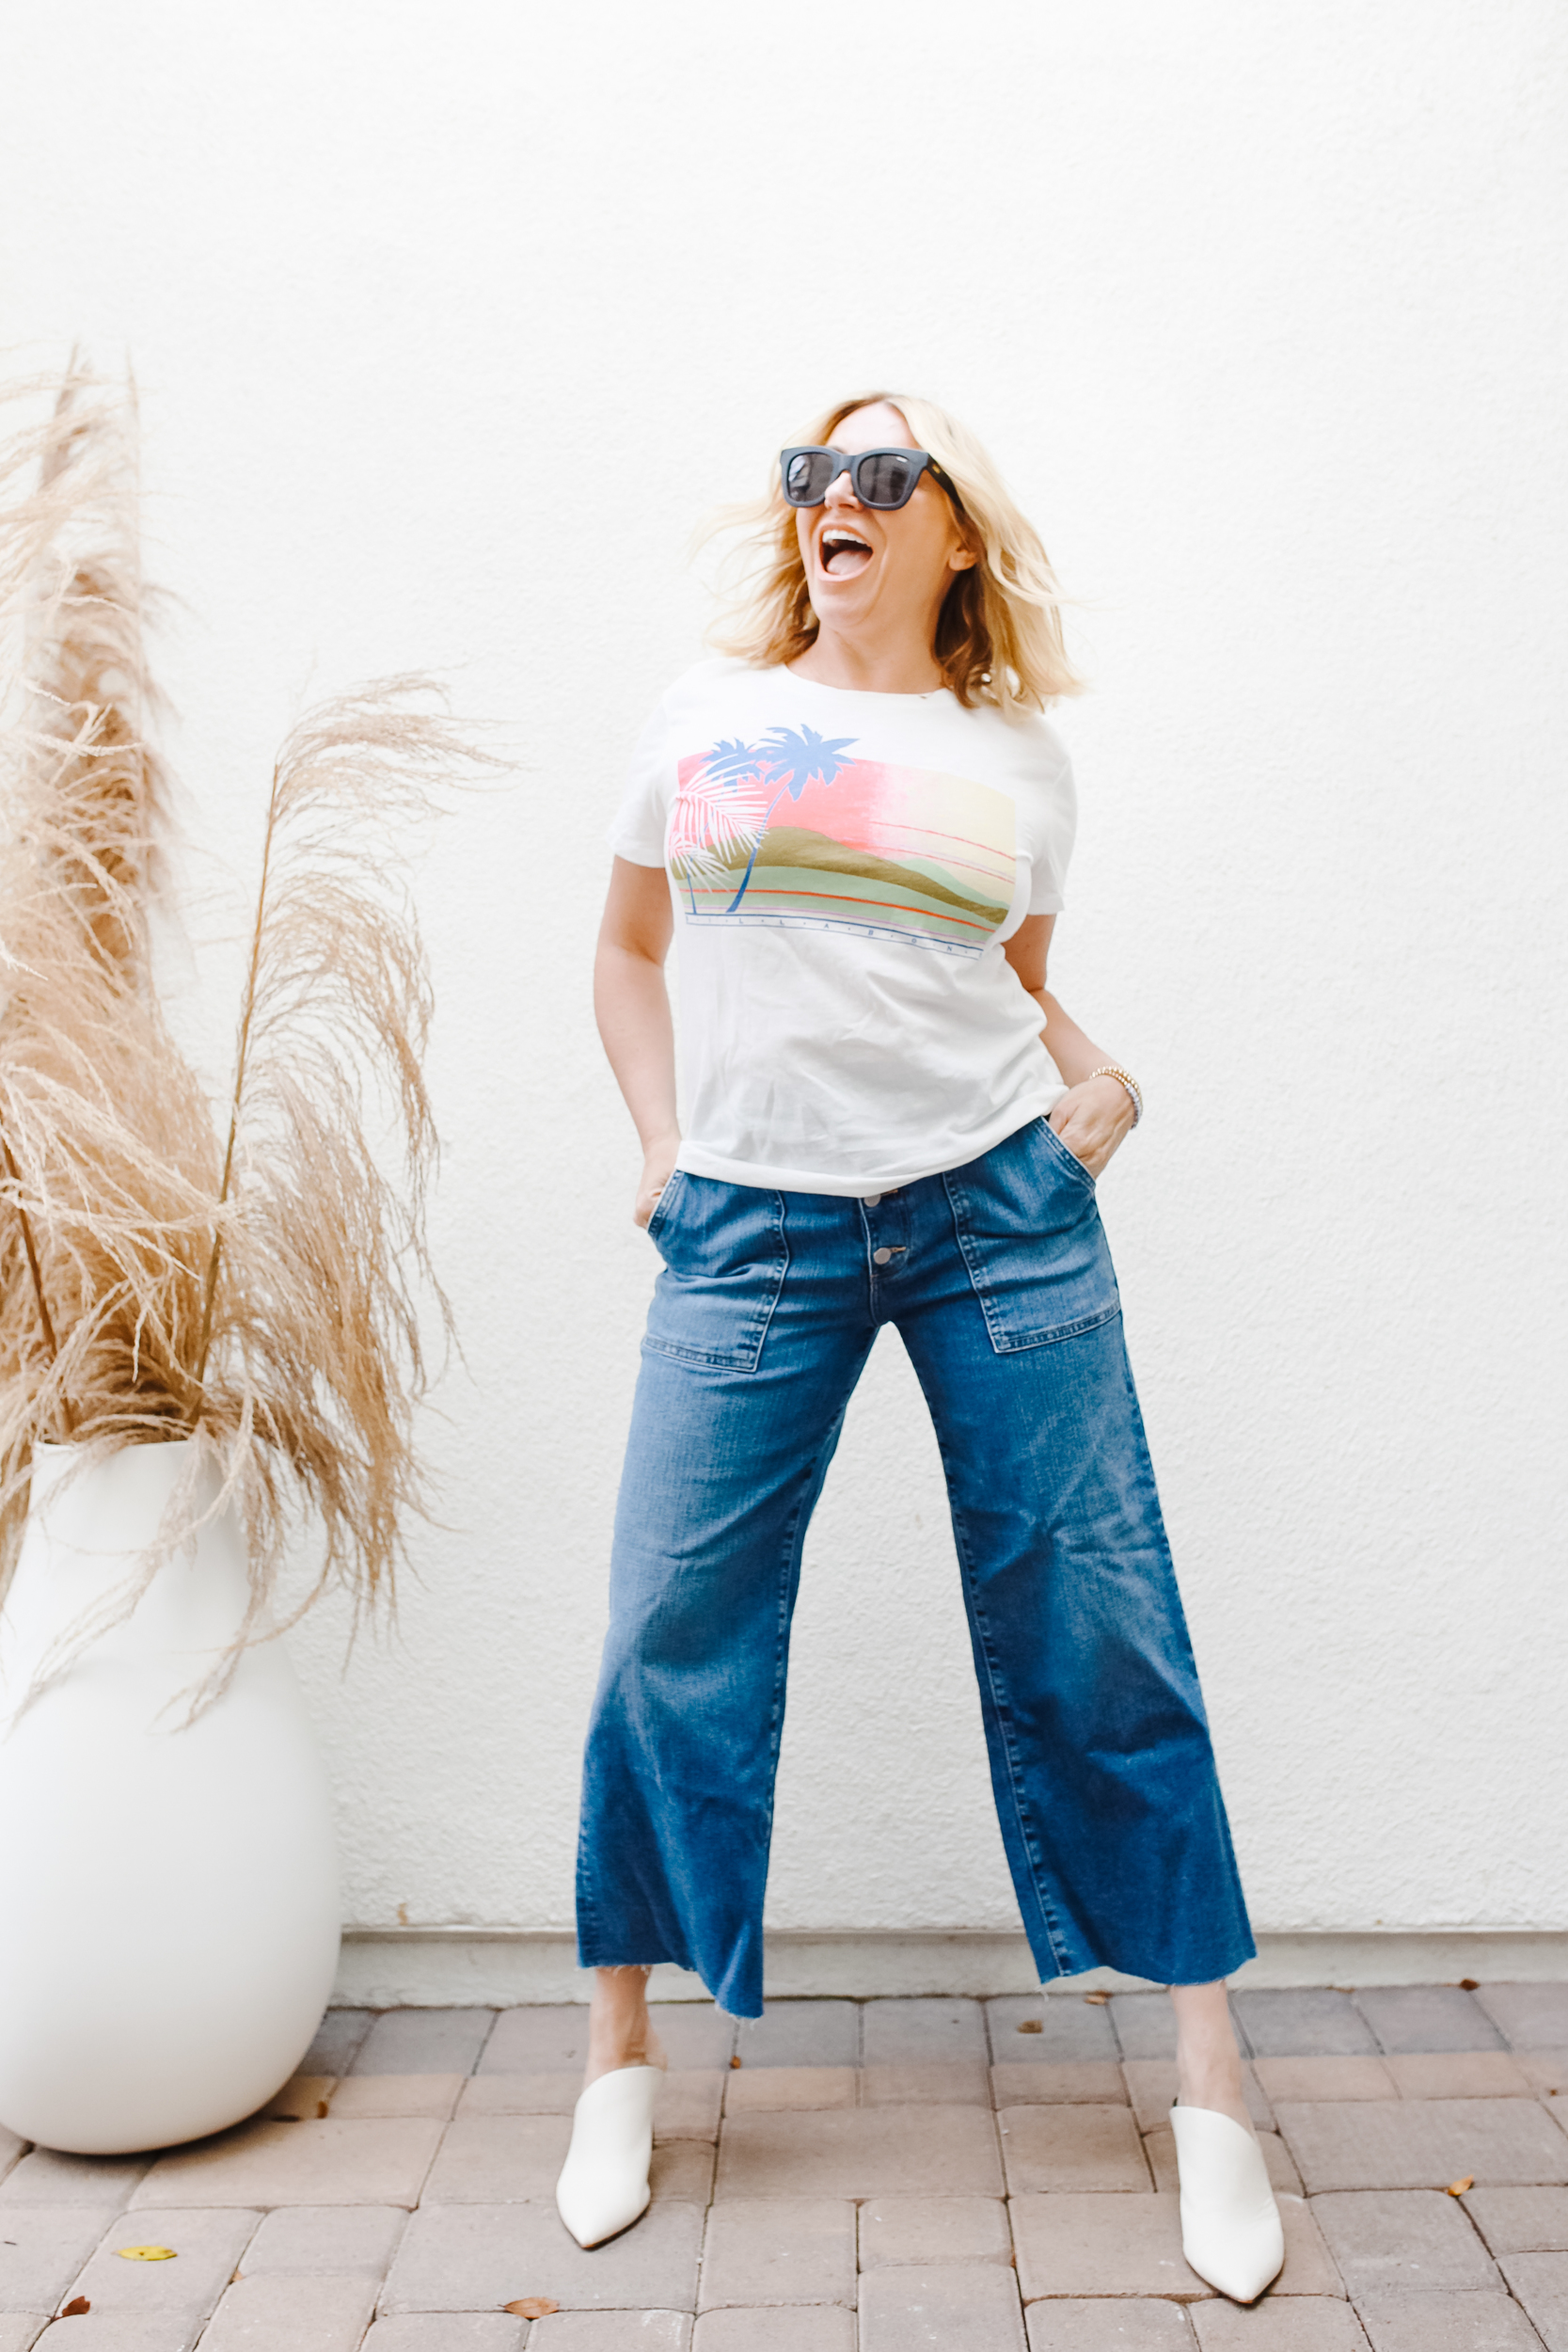 happy woman in jeans and tee